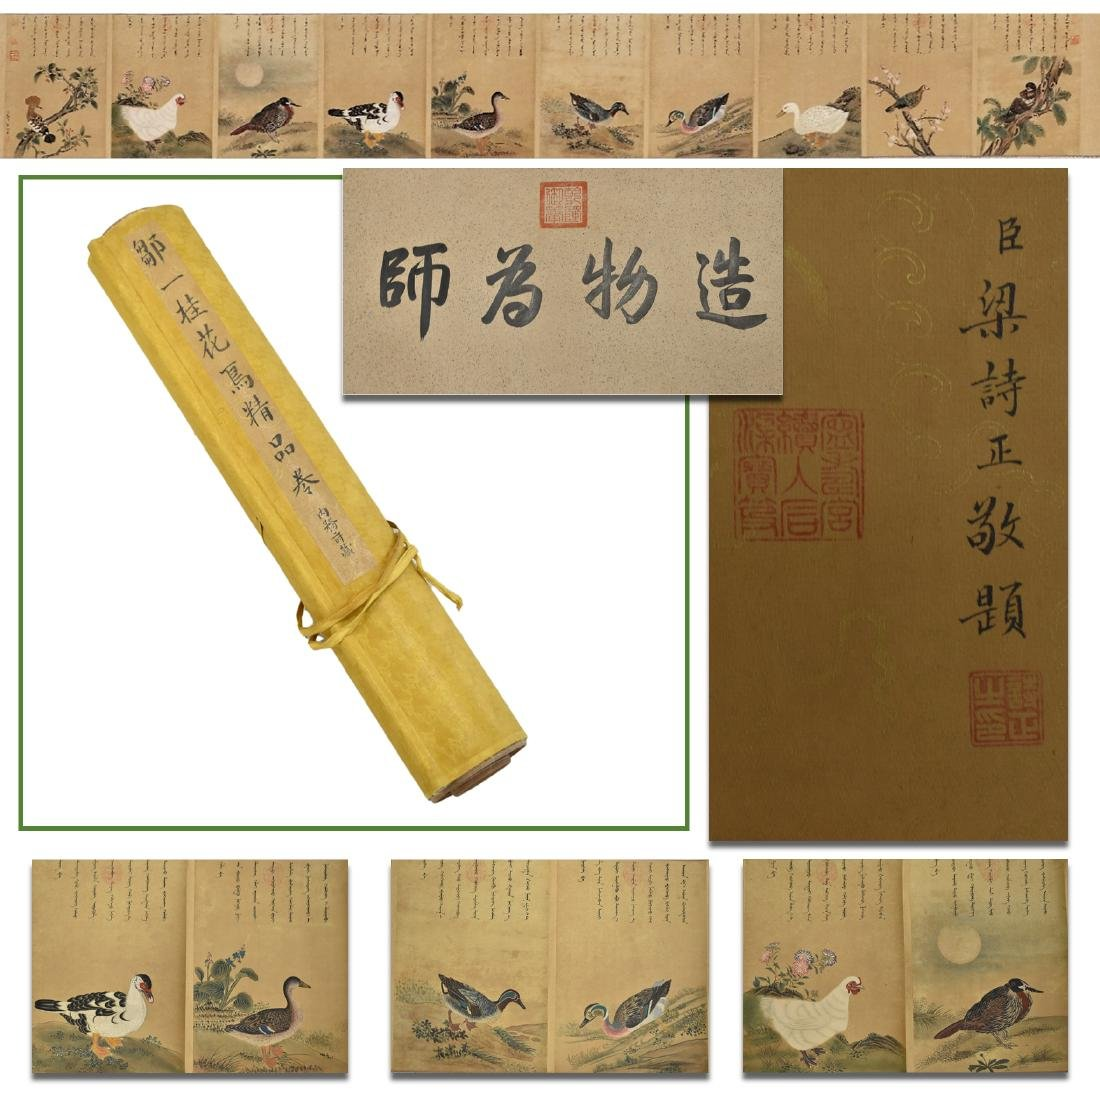 MANCHURIAN HAND LONG SCROLL PAINTING OF BIRDS